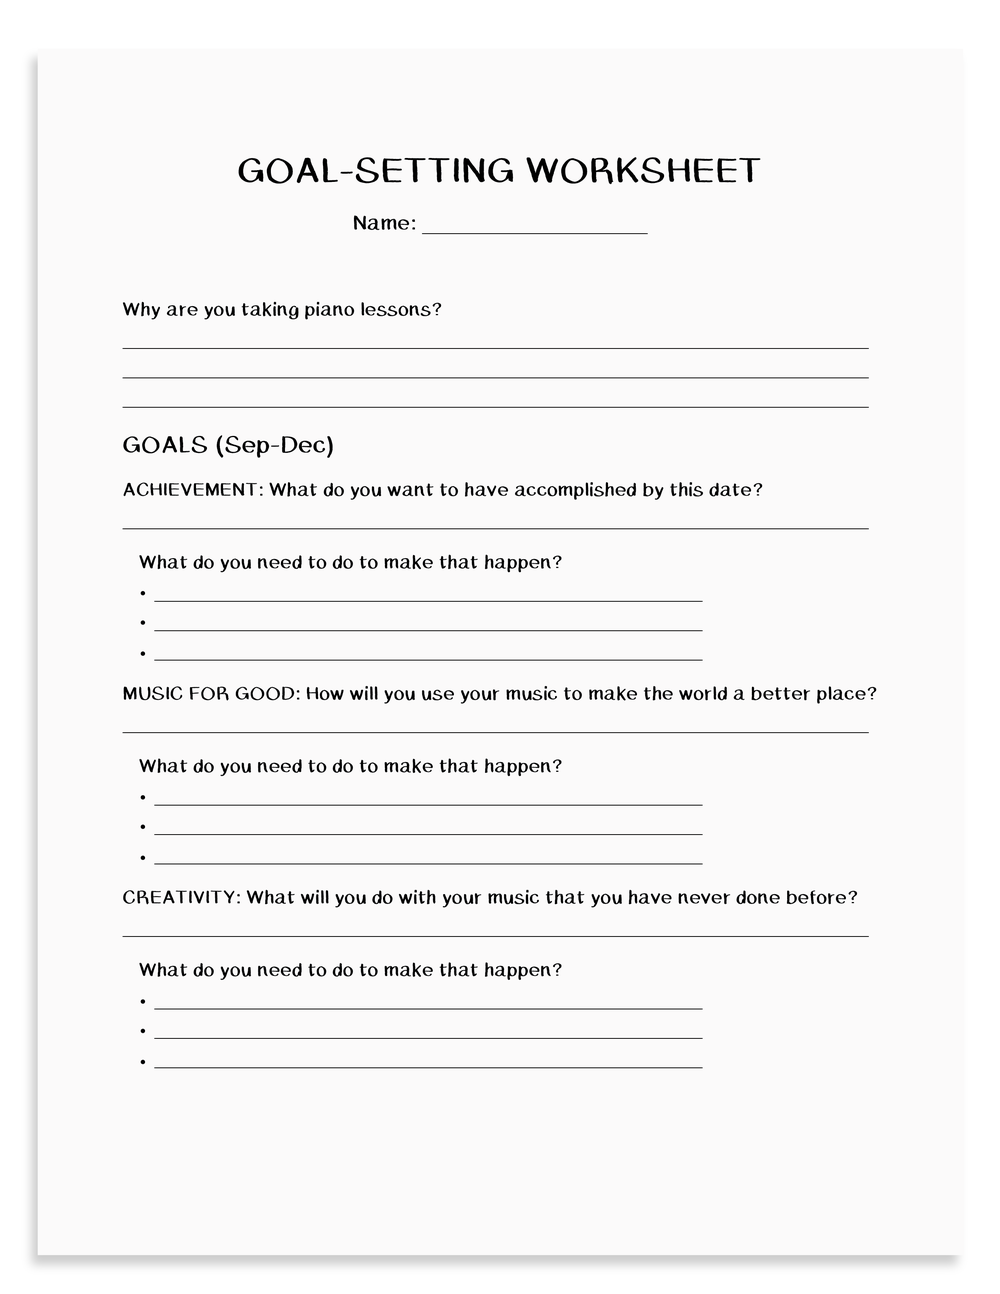 Worksheets Types Of Maps Worksheet worksheet guide words mytourvn study site 369487048127 playgroup worksheets for teachers word family different types of maps worksheet